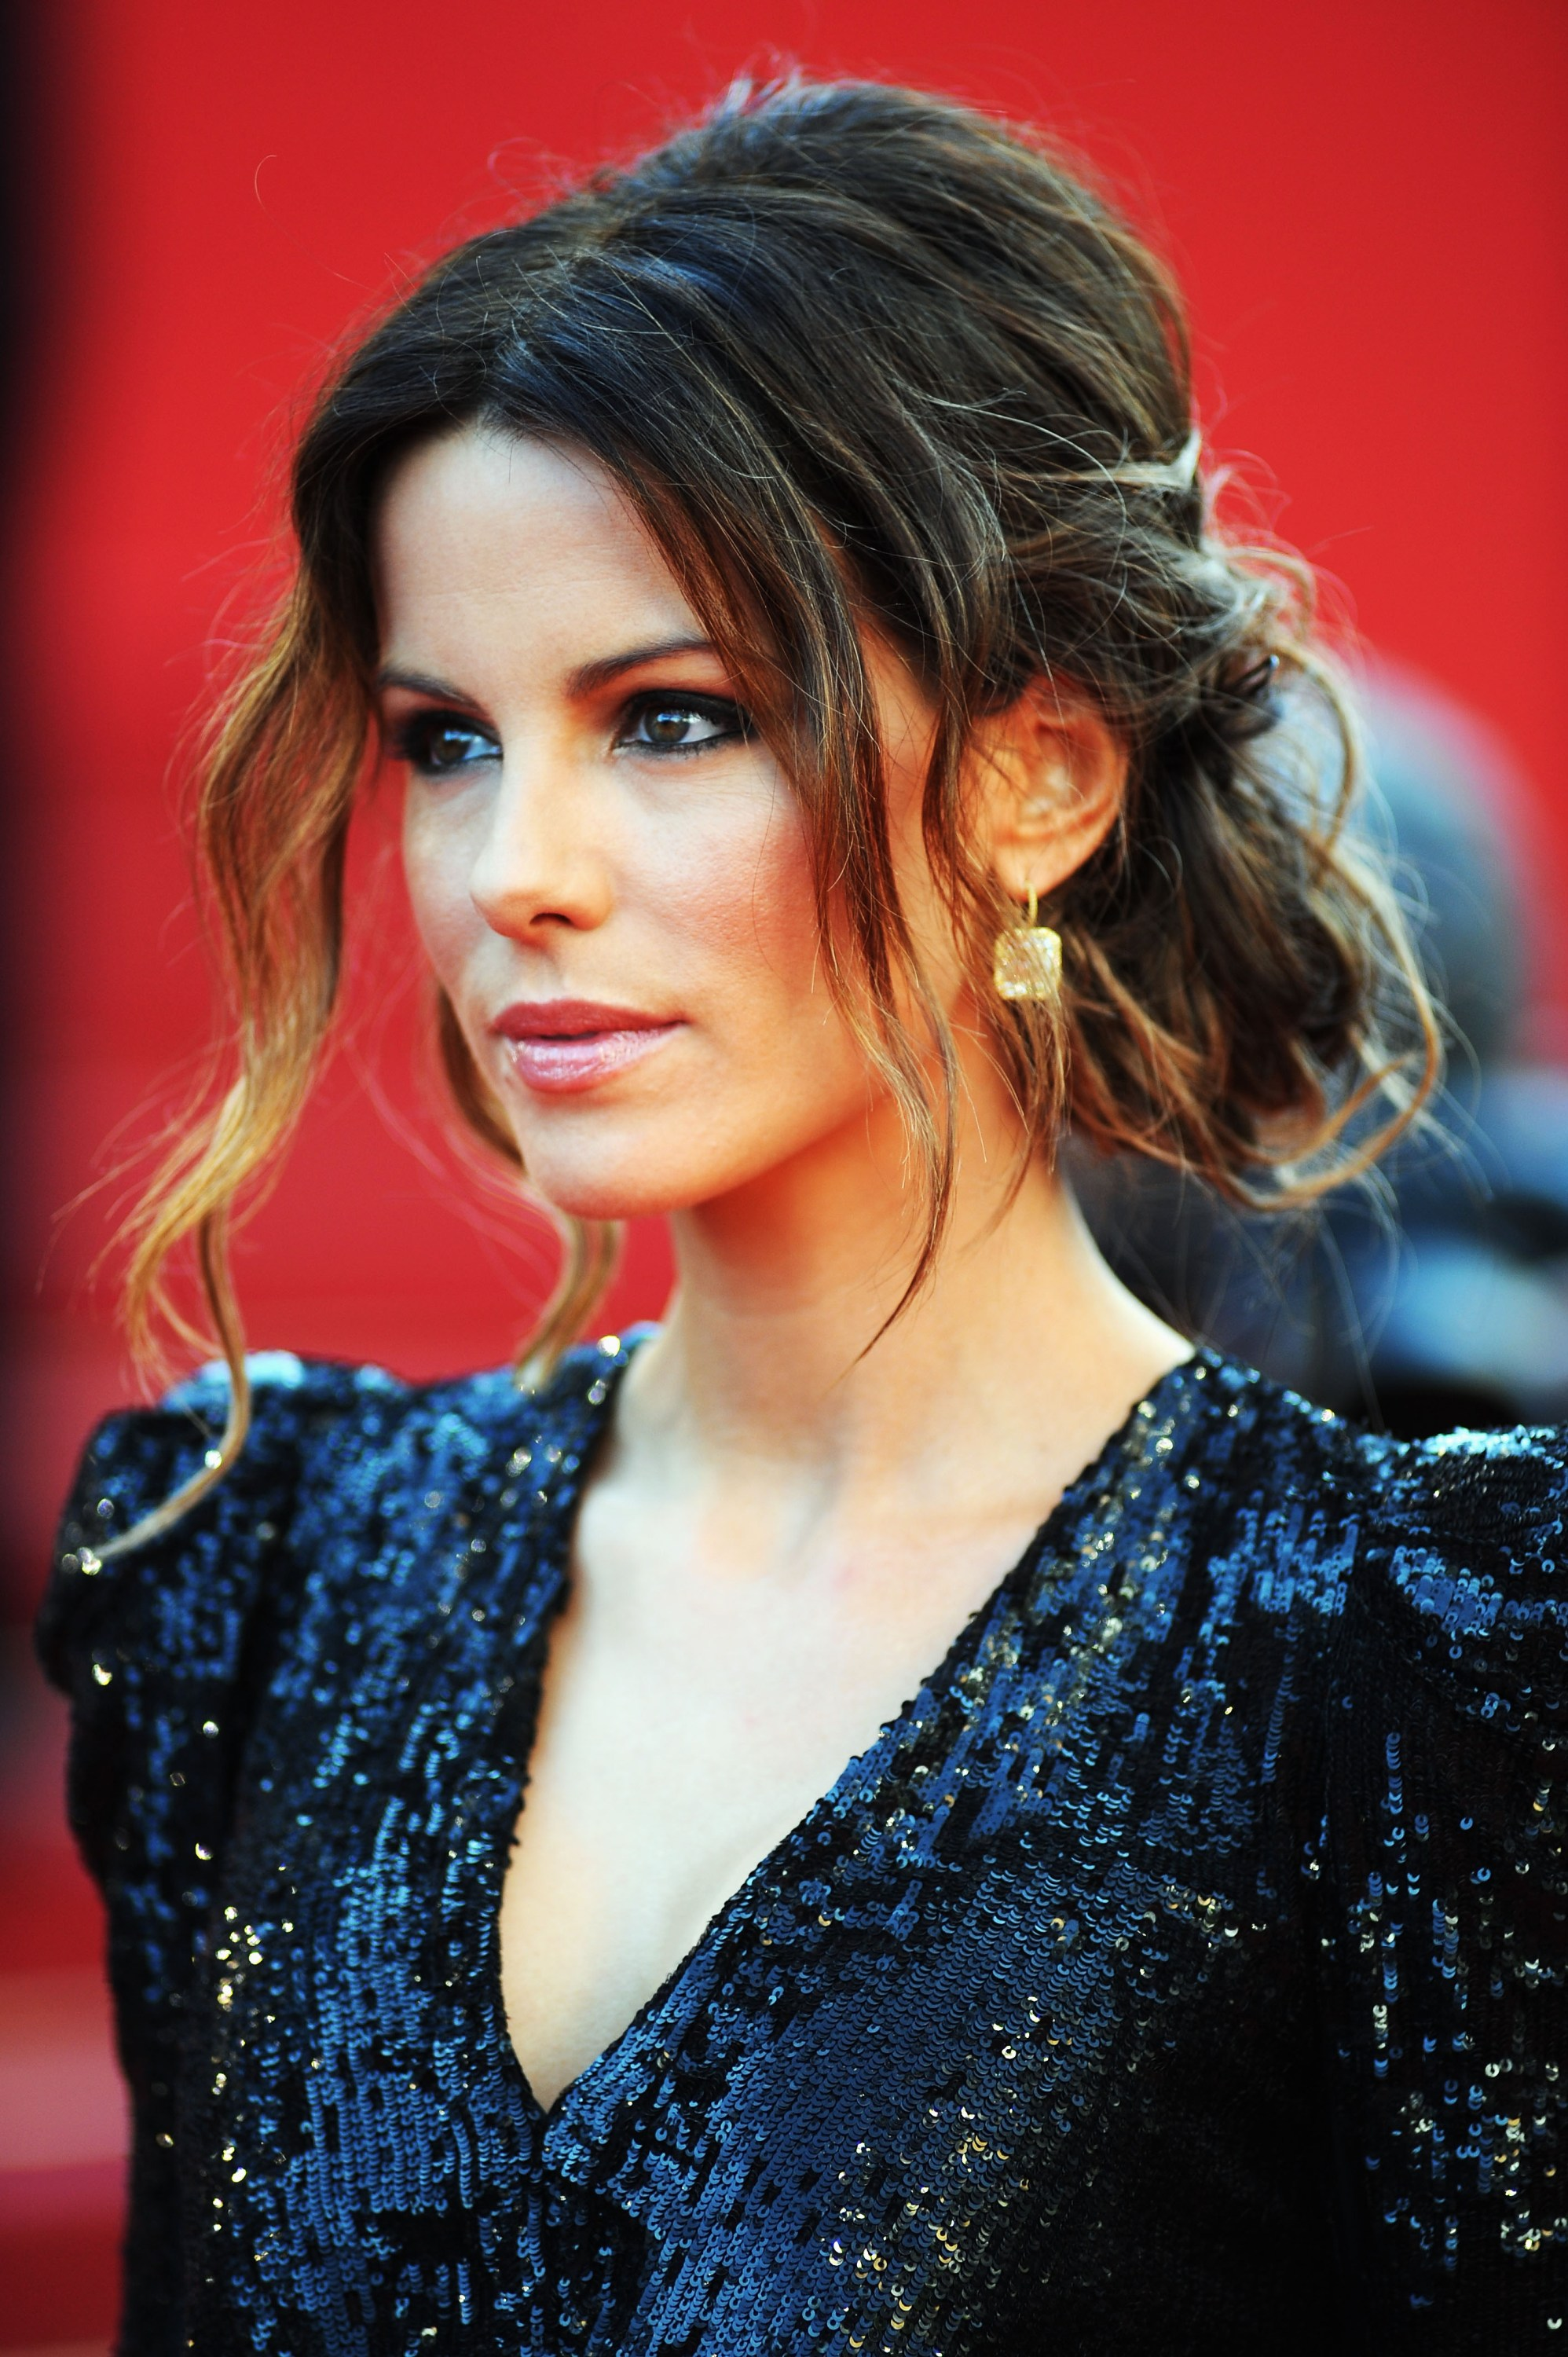 kate beckinsale photo 568 of 1954 pics wallpaper photo